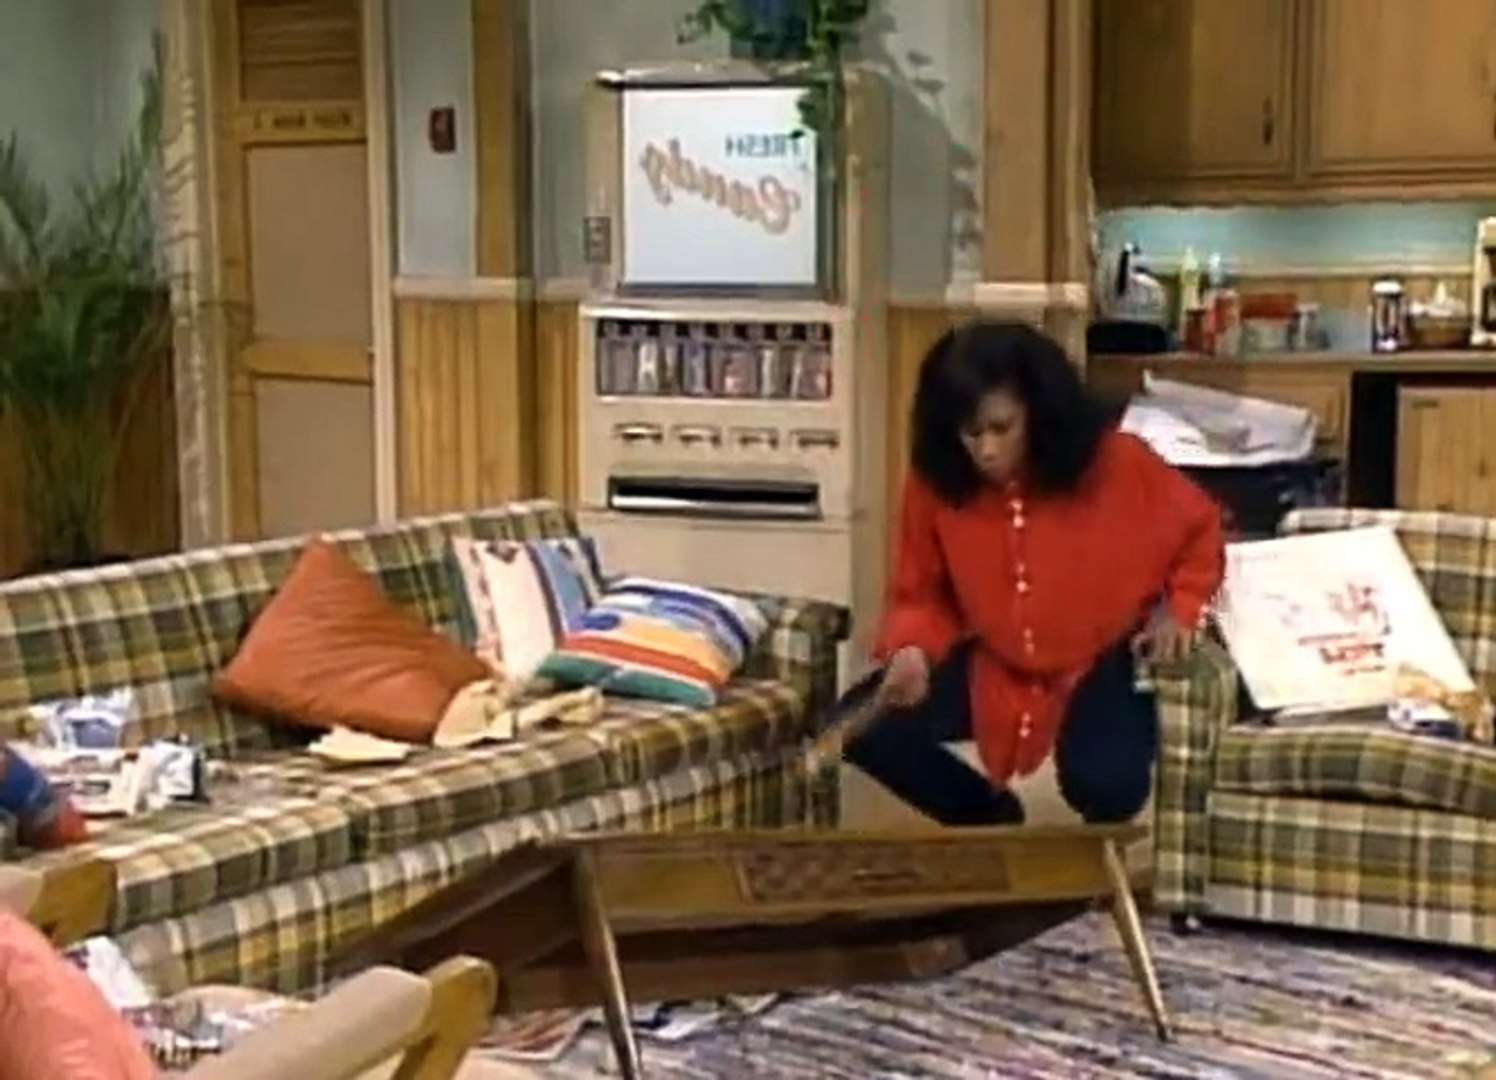 A Different World S01 - Ep13 The Prime of Miss Lettie Bostic HD Watch